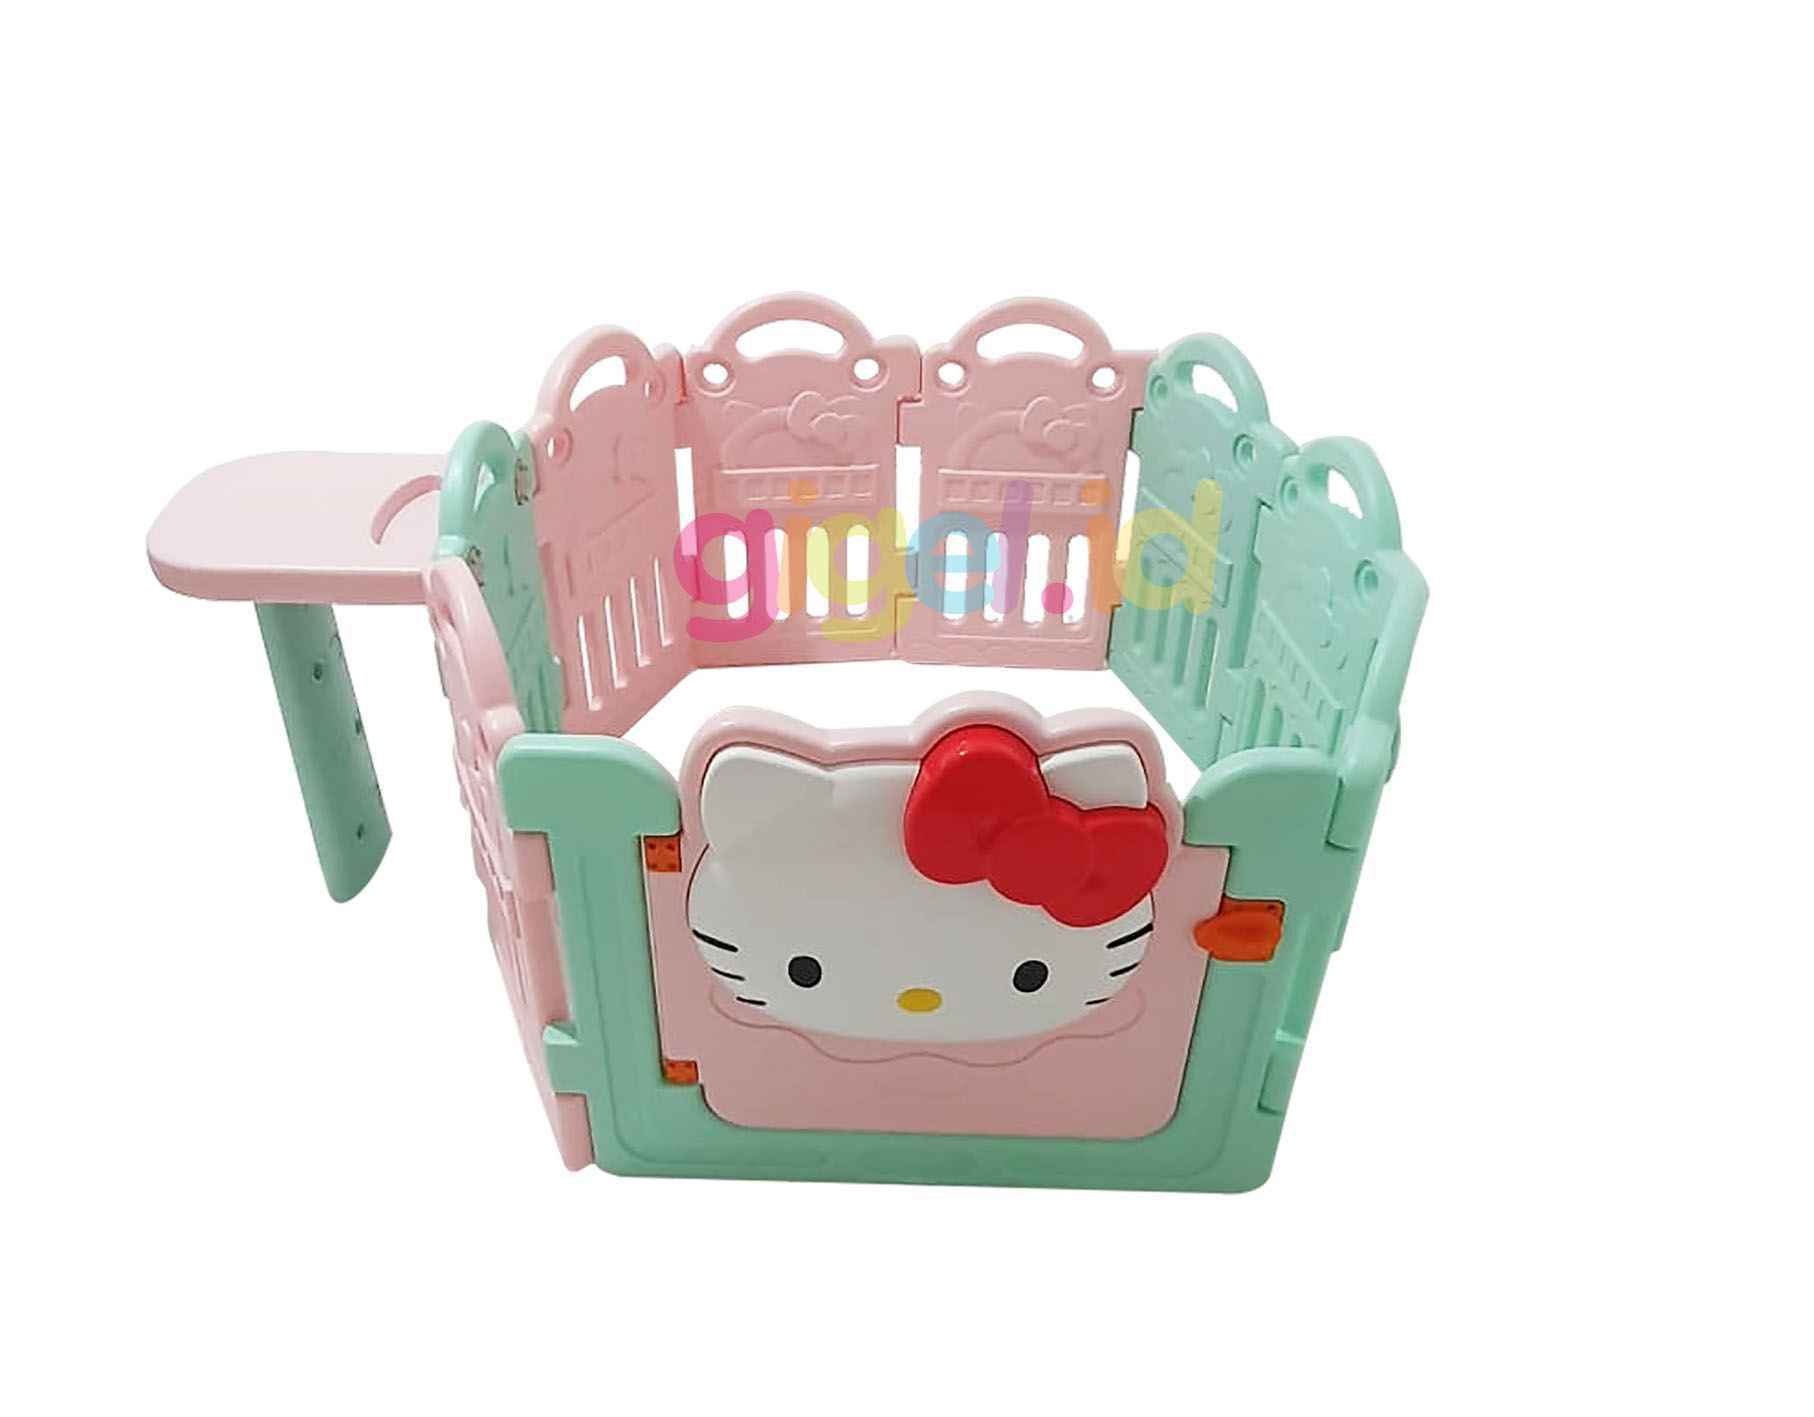 Coby Haus Hello Kitty Fence Gigel.id